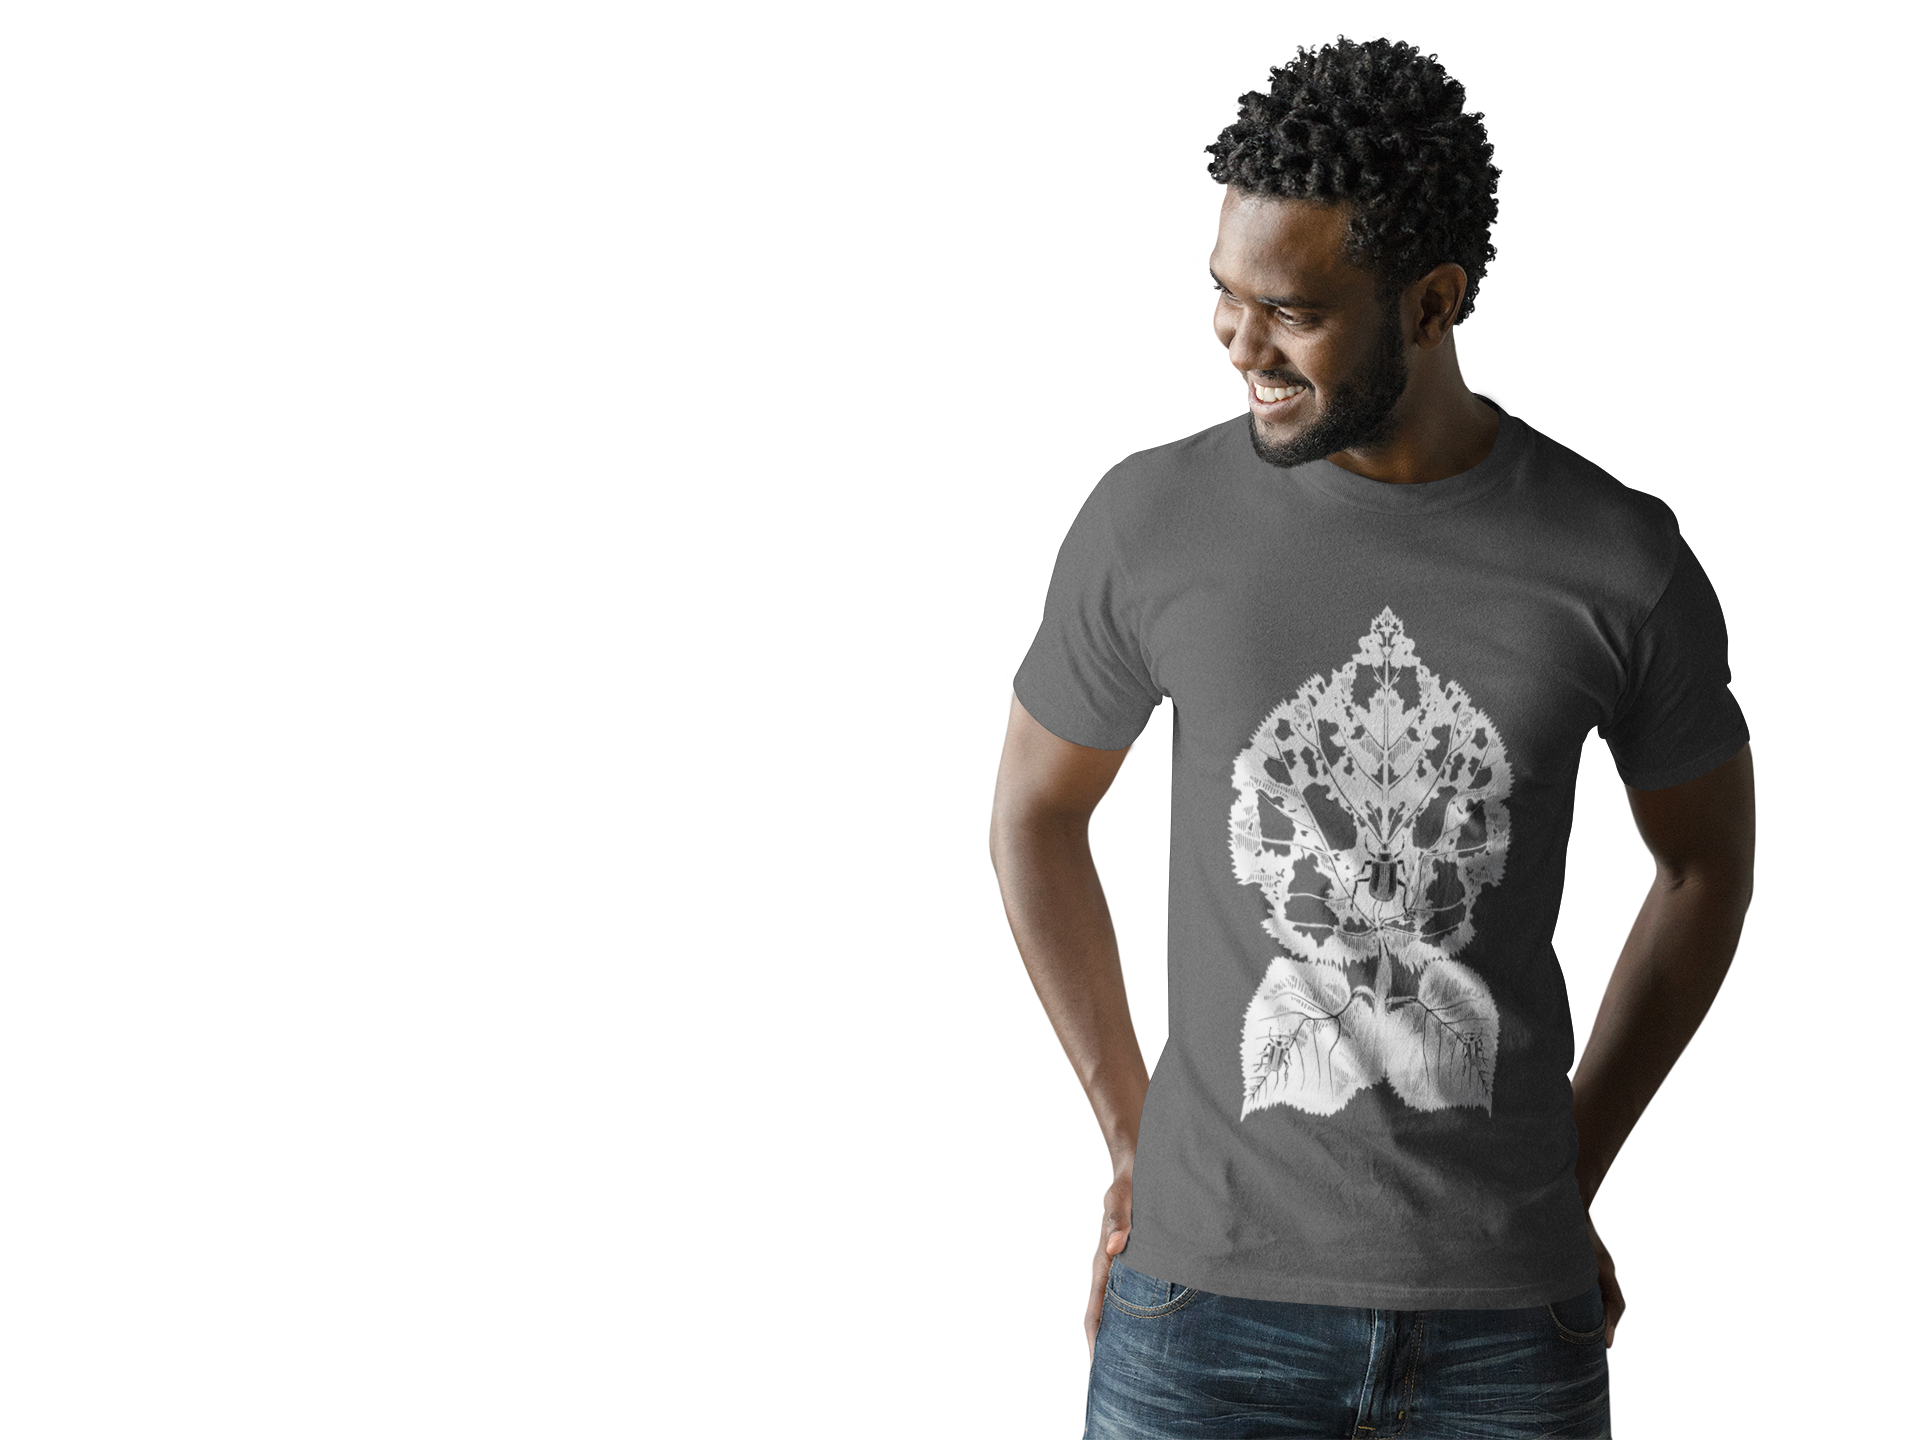 t-shirt-mockup-of-an-attractive-young-man-smiling-a9826 (1).png